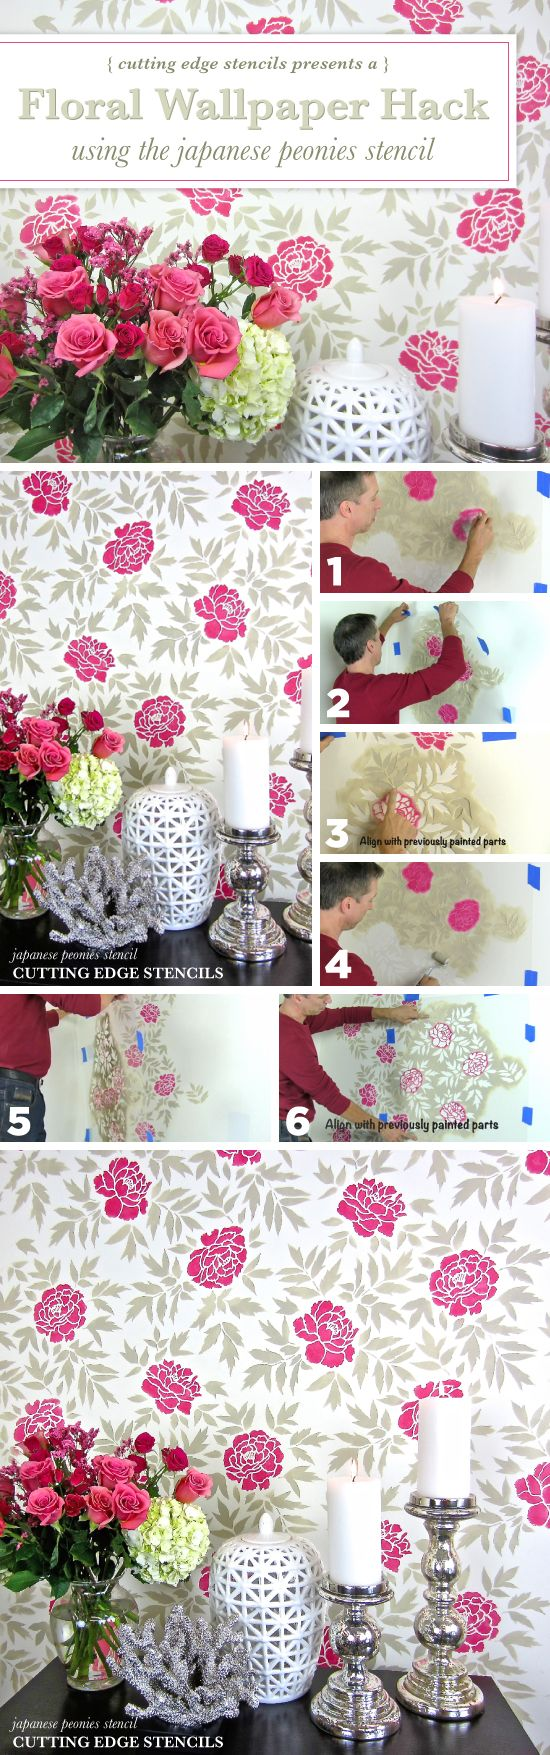 217 best flower stencils decor images on pinterest flower cutting edge stencils shares how to stencil a floral accent wall to get a wallpaper look amipublicfo Images